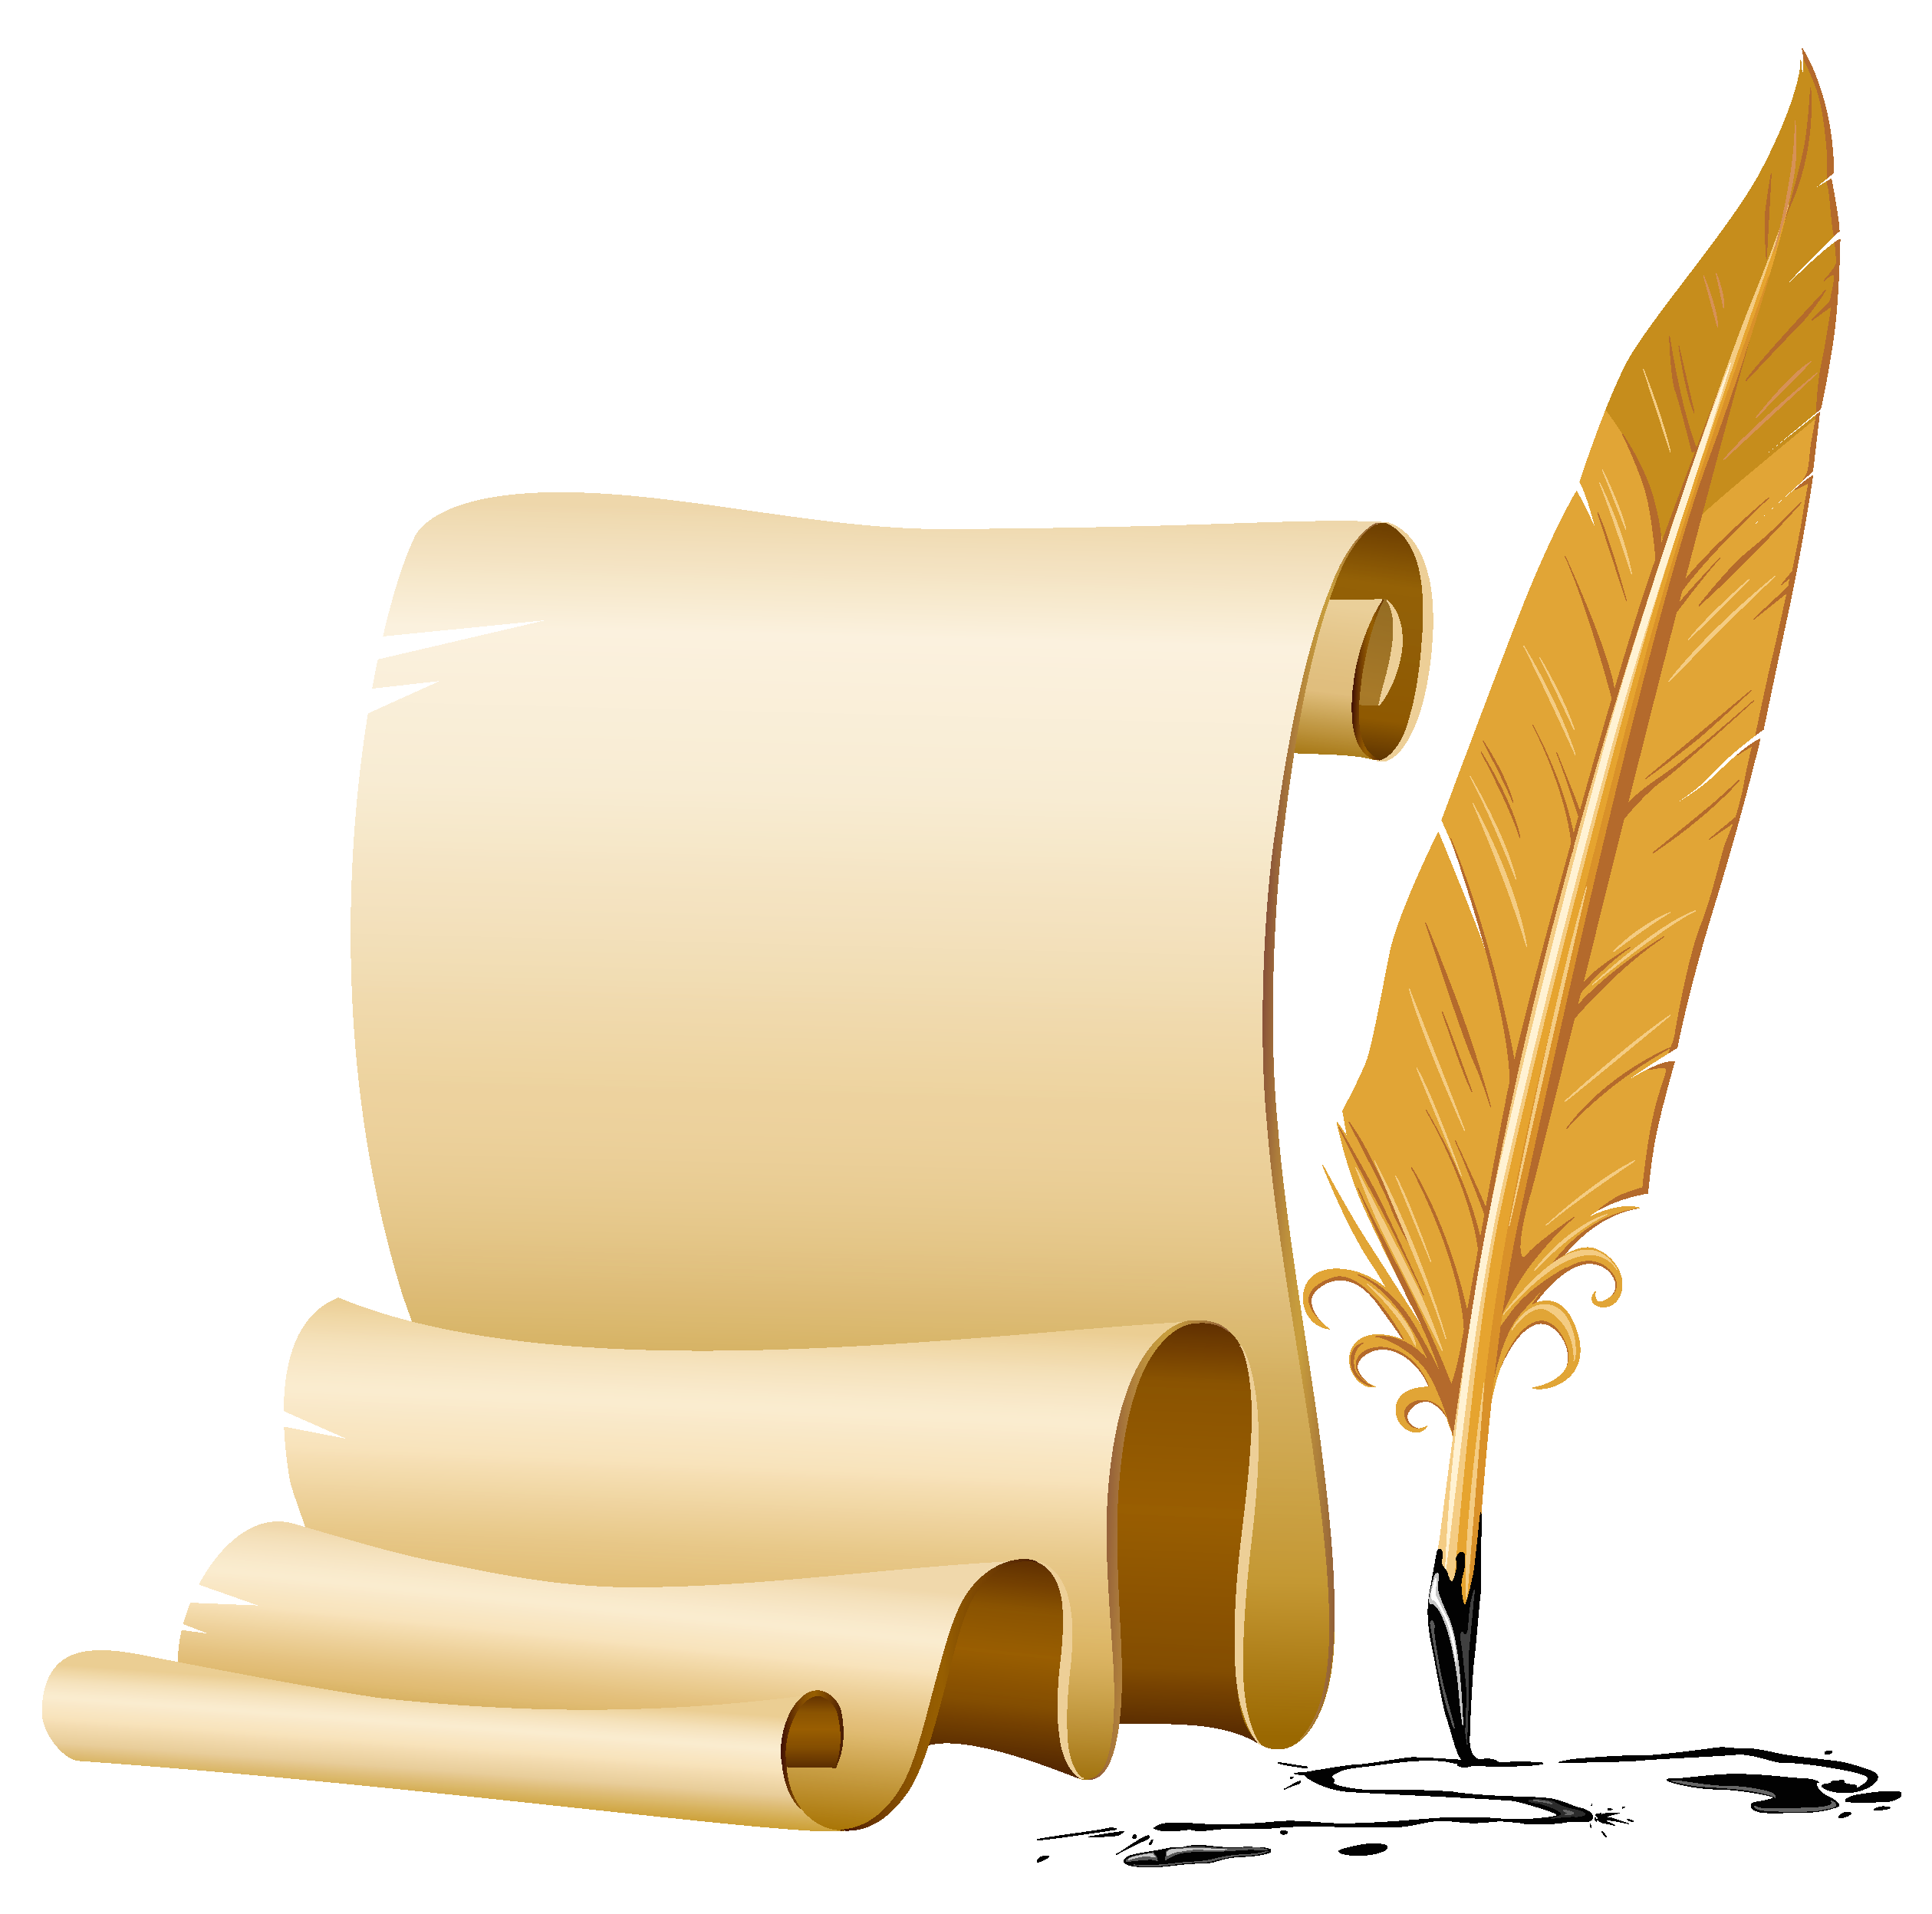 Scrolled and Quill Pen PNG Image.